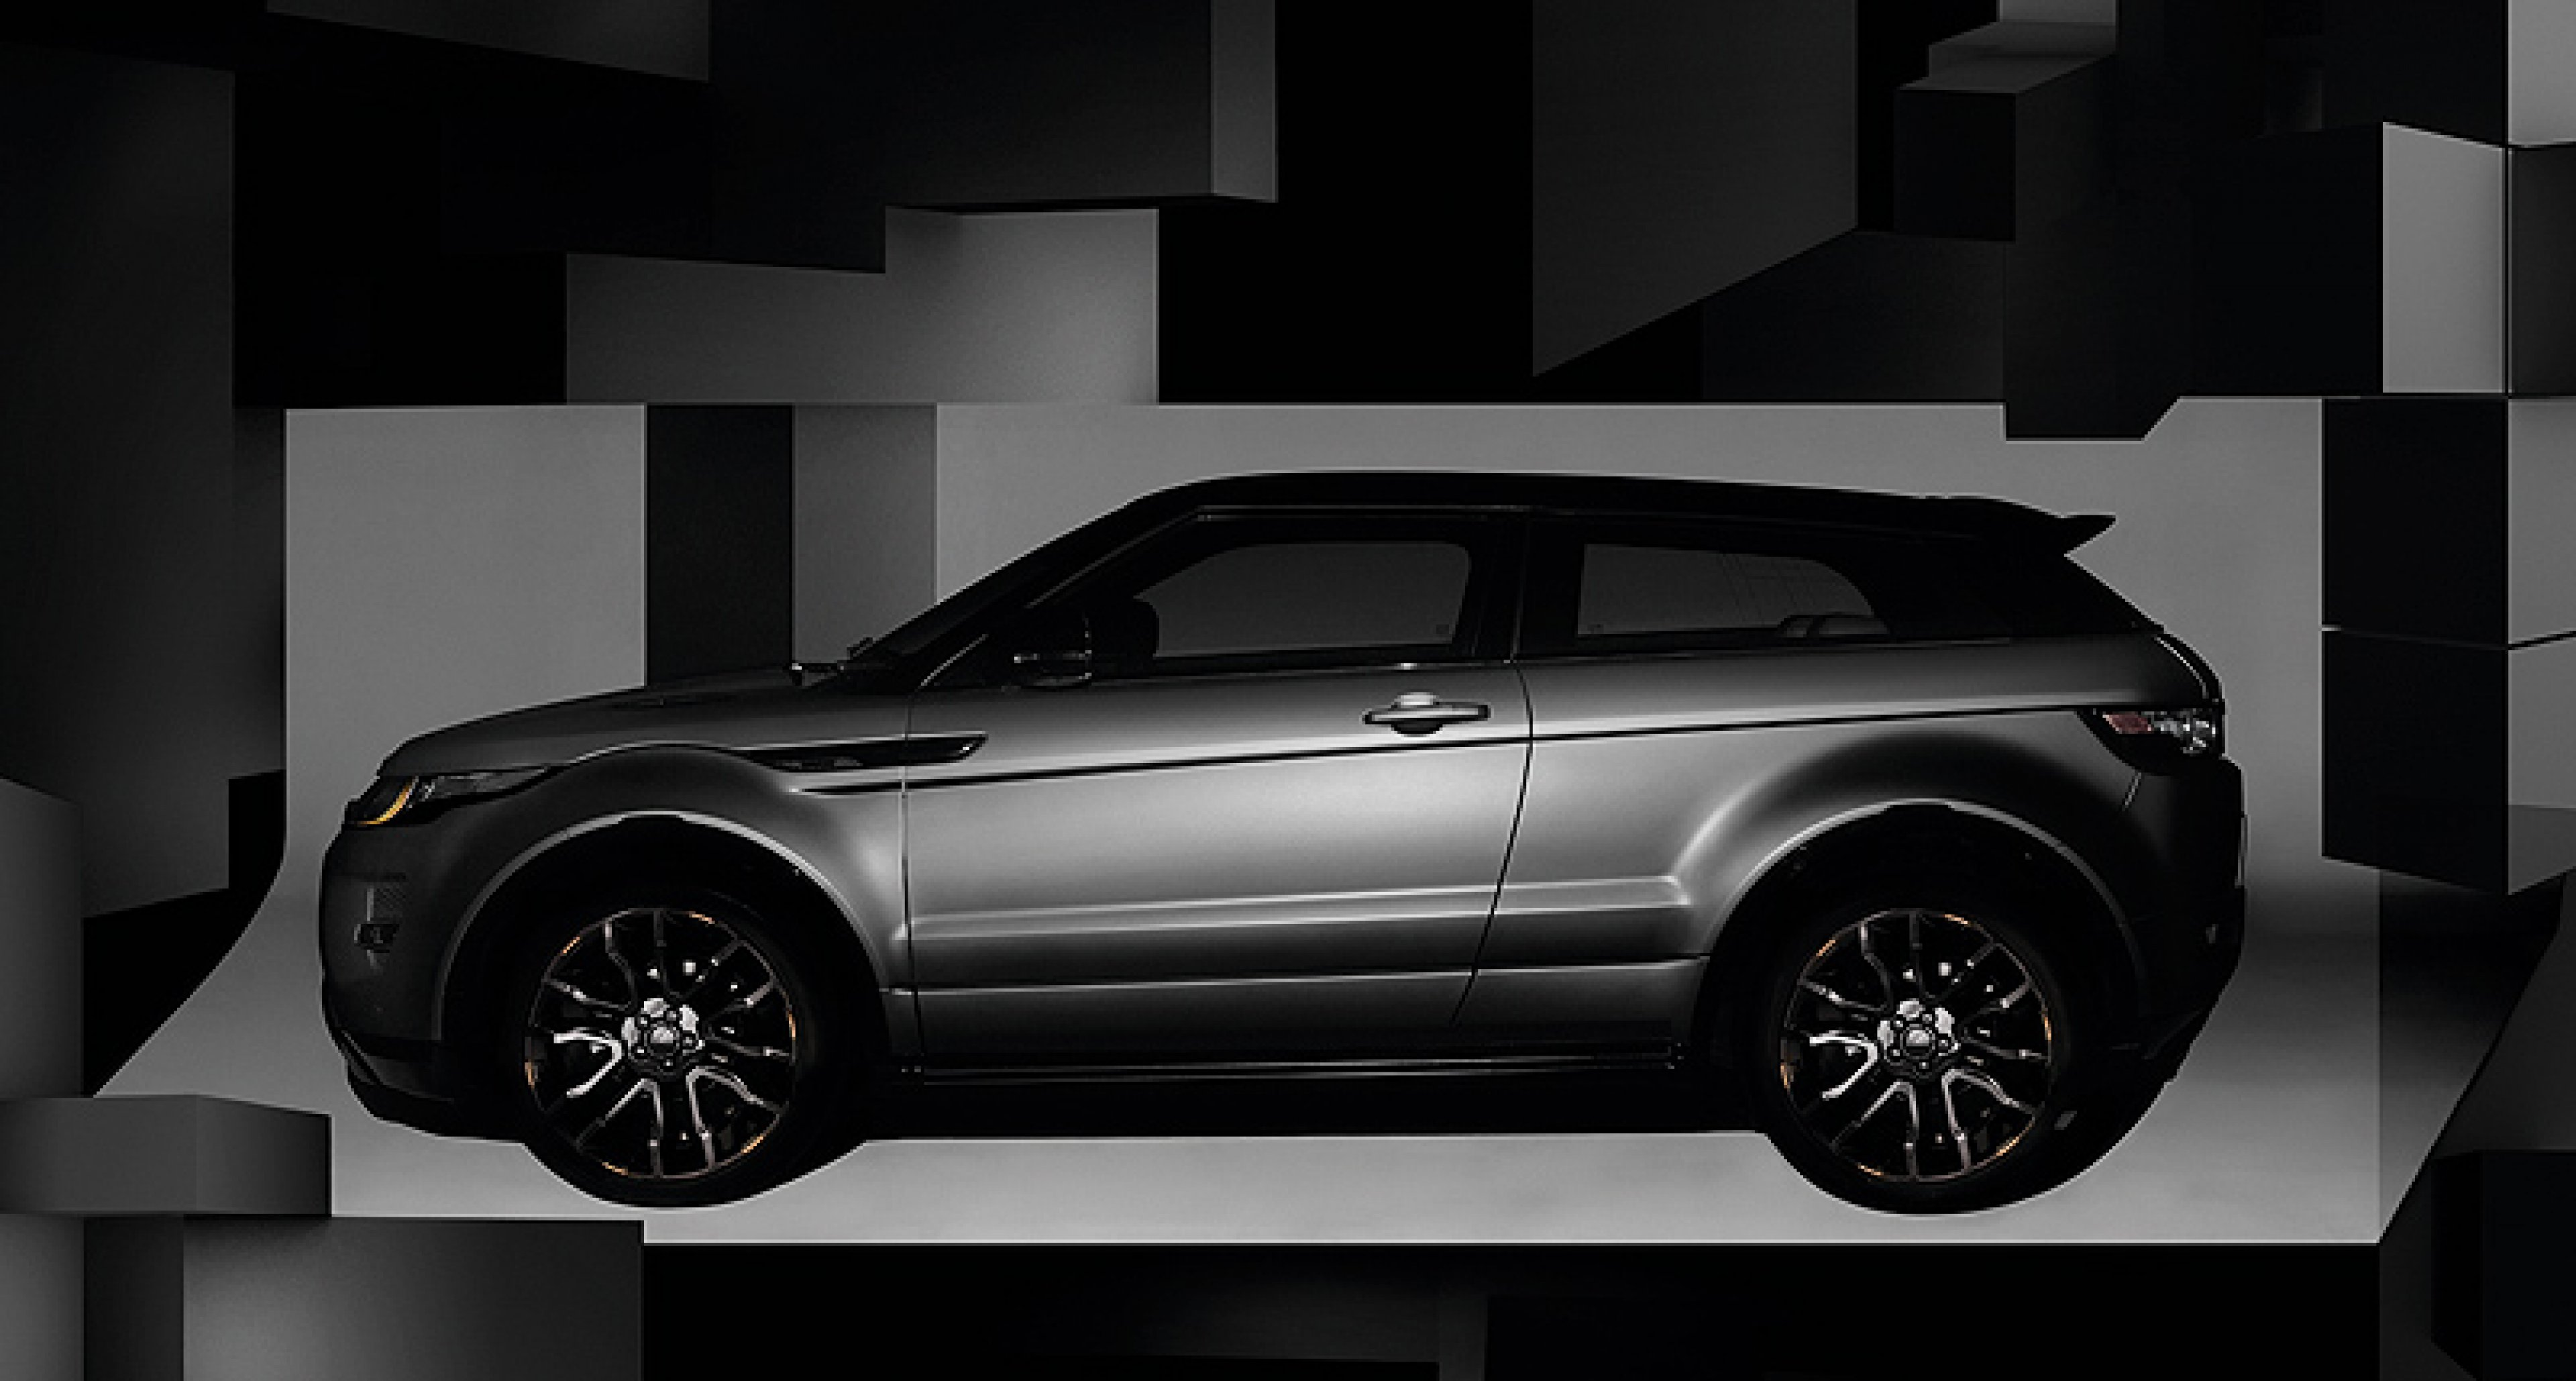 Range Rover Evoque with Victoria Beckham: Posh and stealthy!